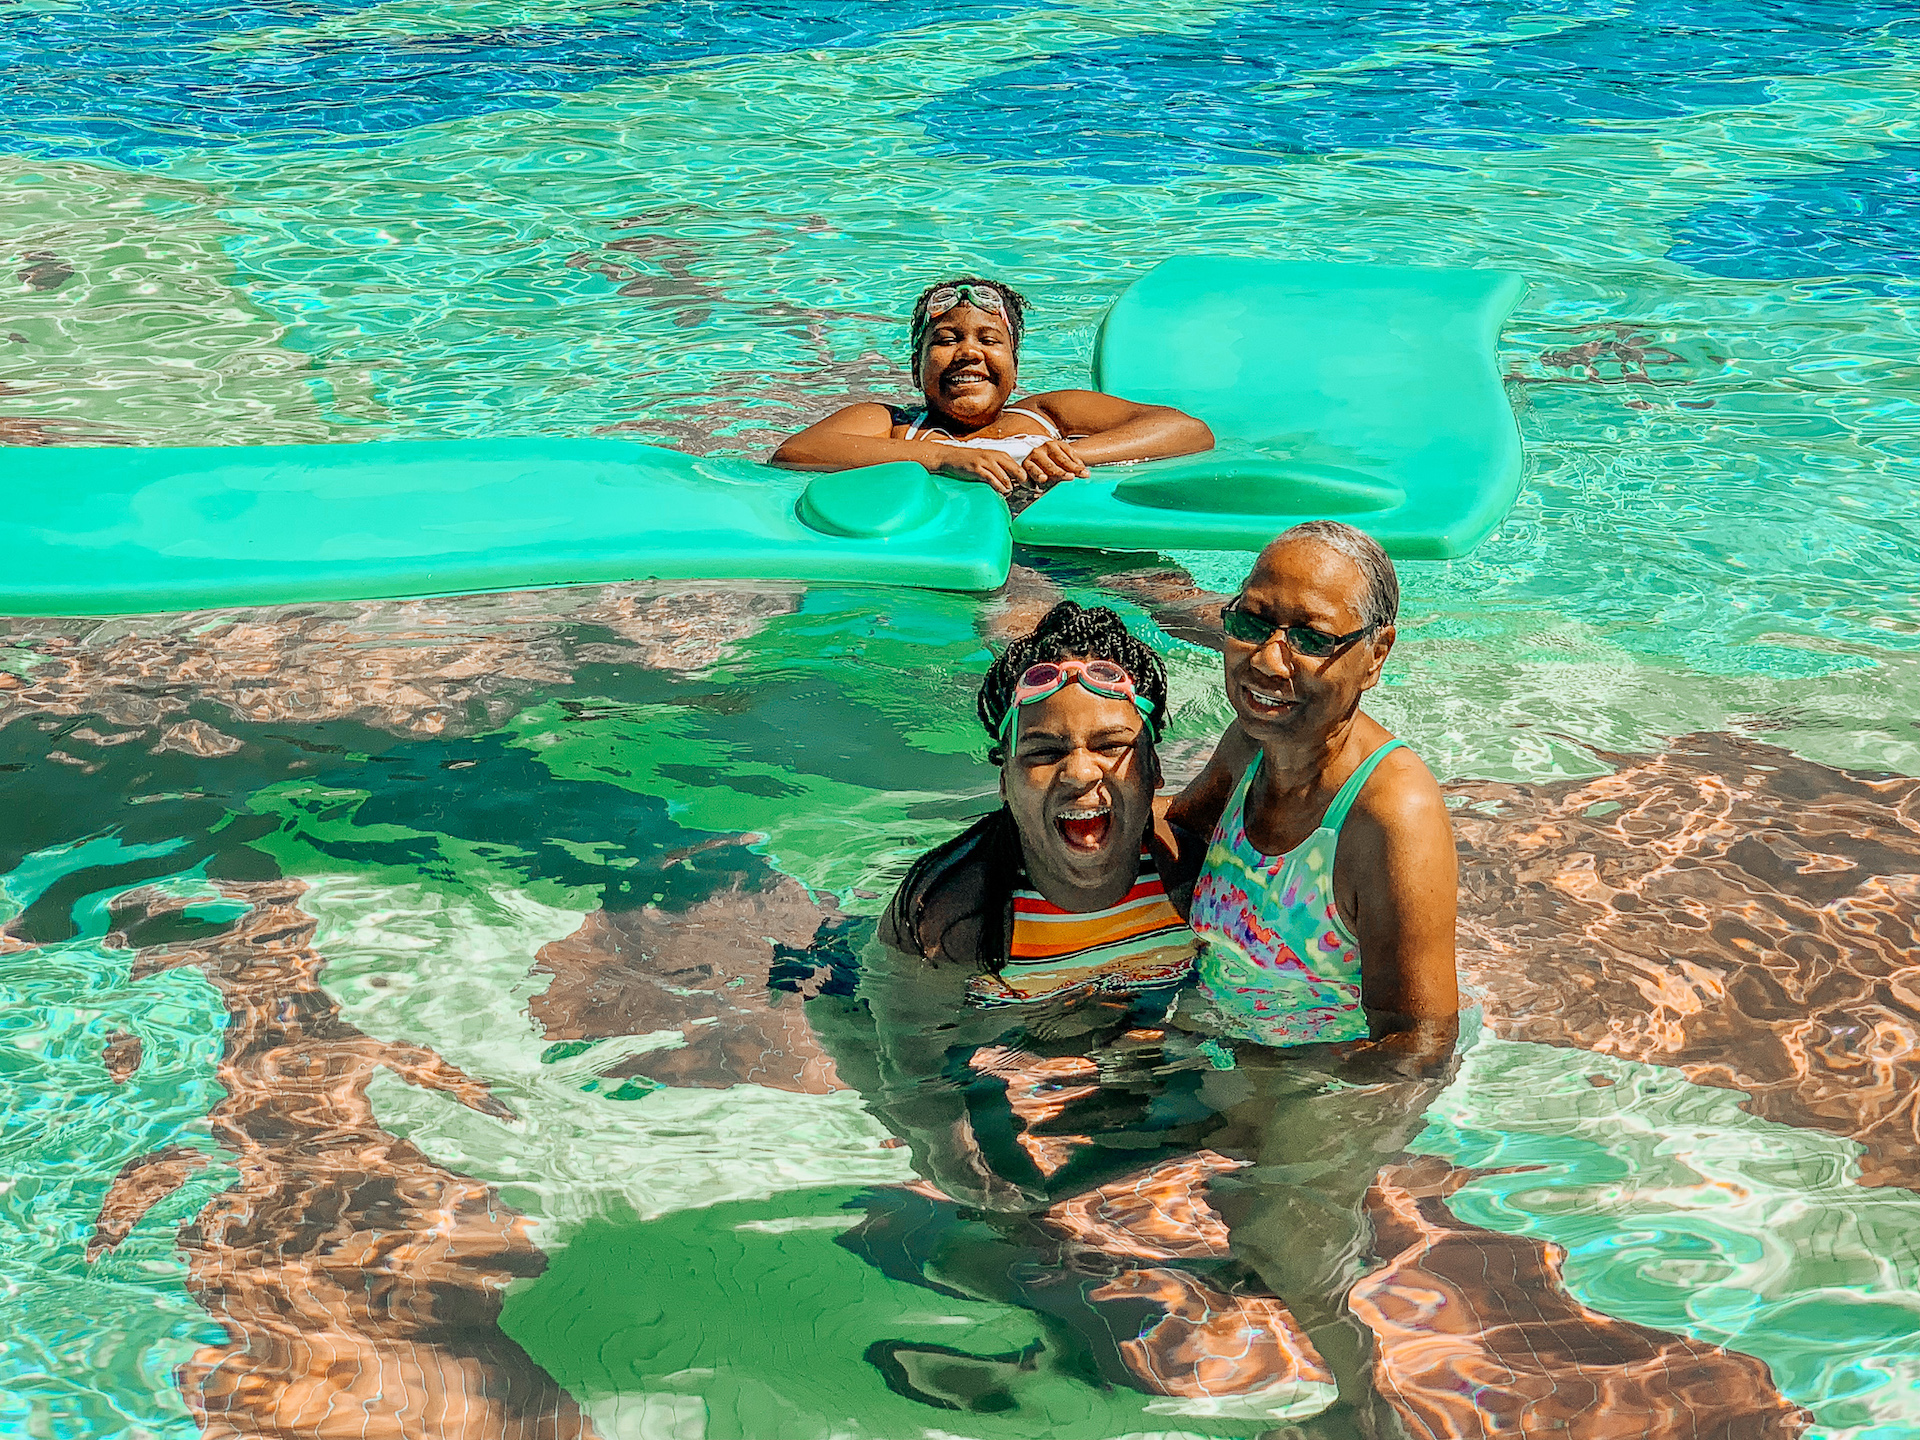 Madison, granny and cam at the pool in Beaches Turks and Caicos